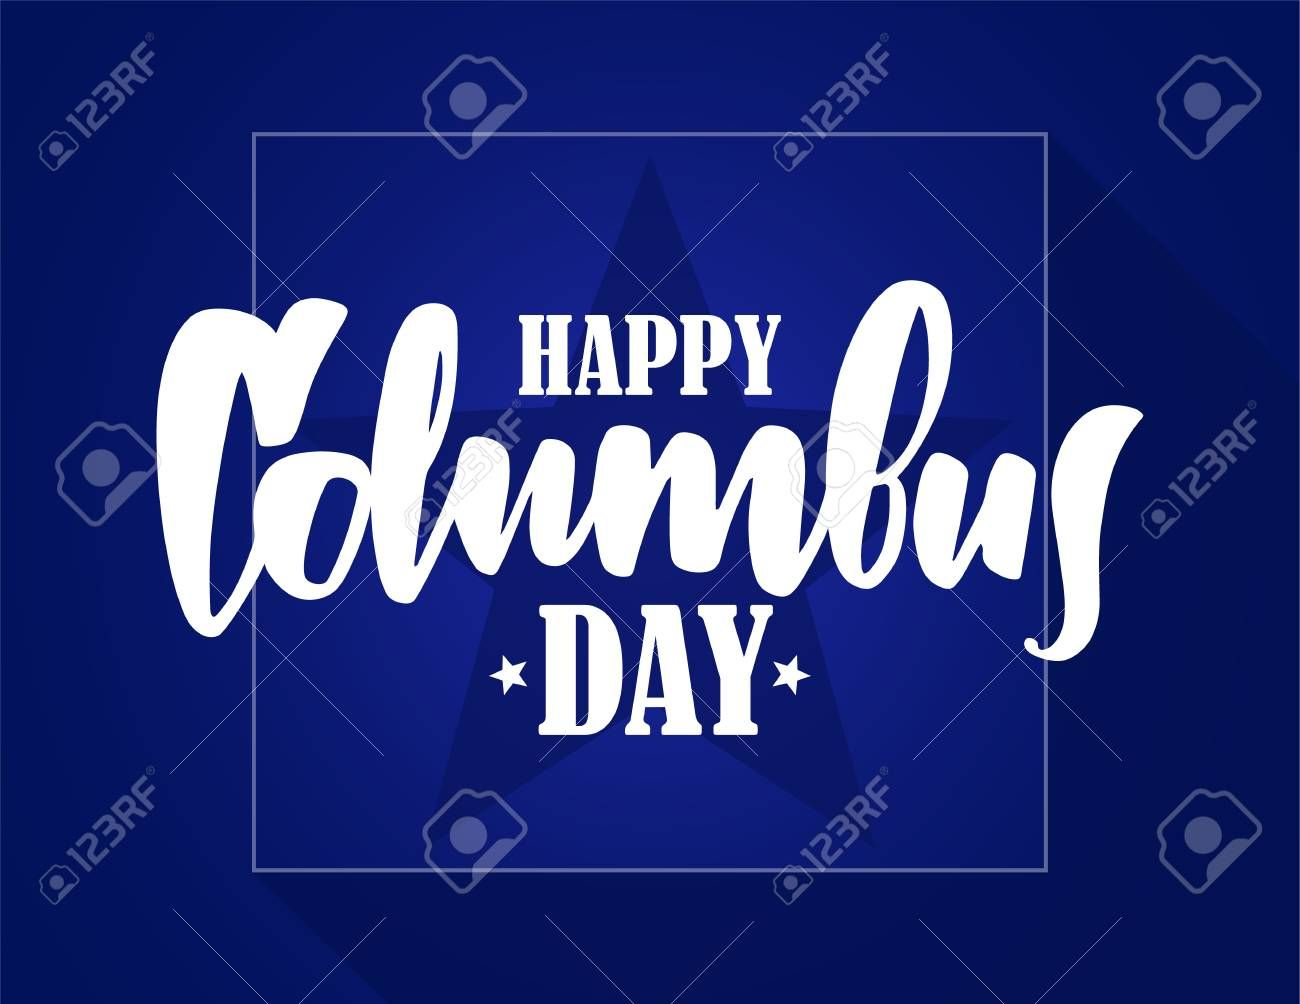 Vector Illustration Calligraphic Lettering Composition Of Happy Columbus Day Typography Design Ad Lettering Co Happy Columbus Day Lettering Neon Signs